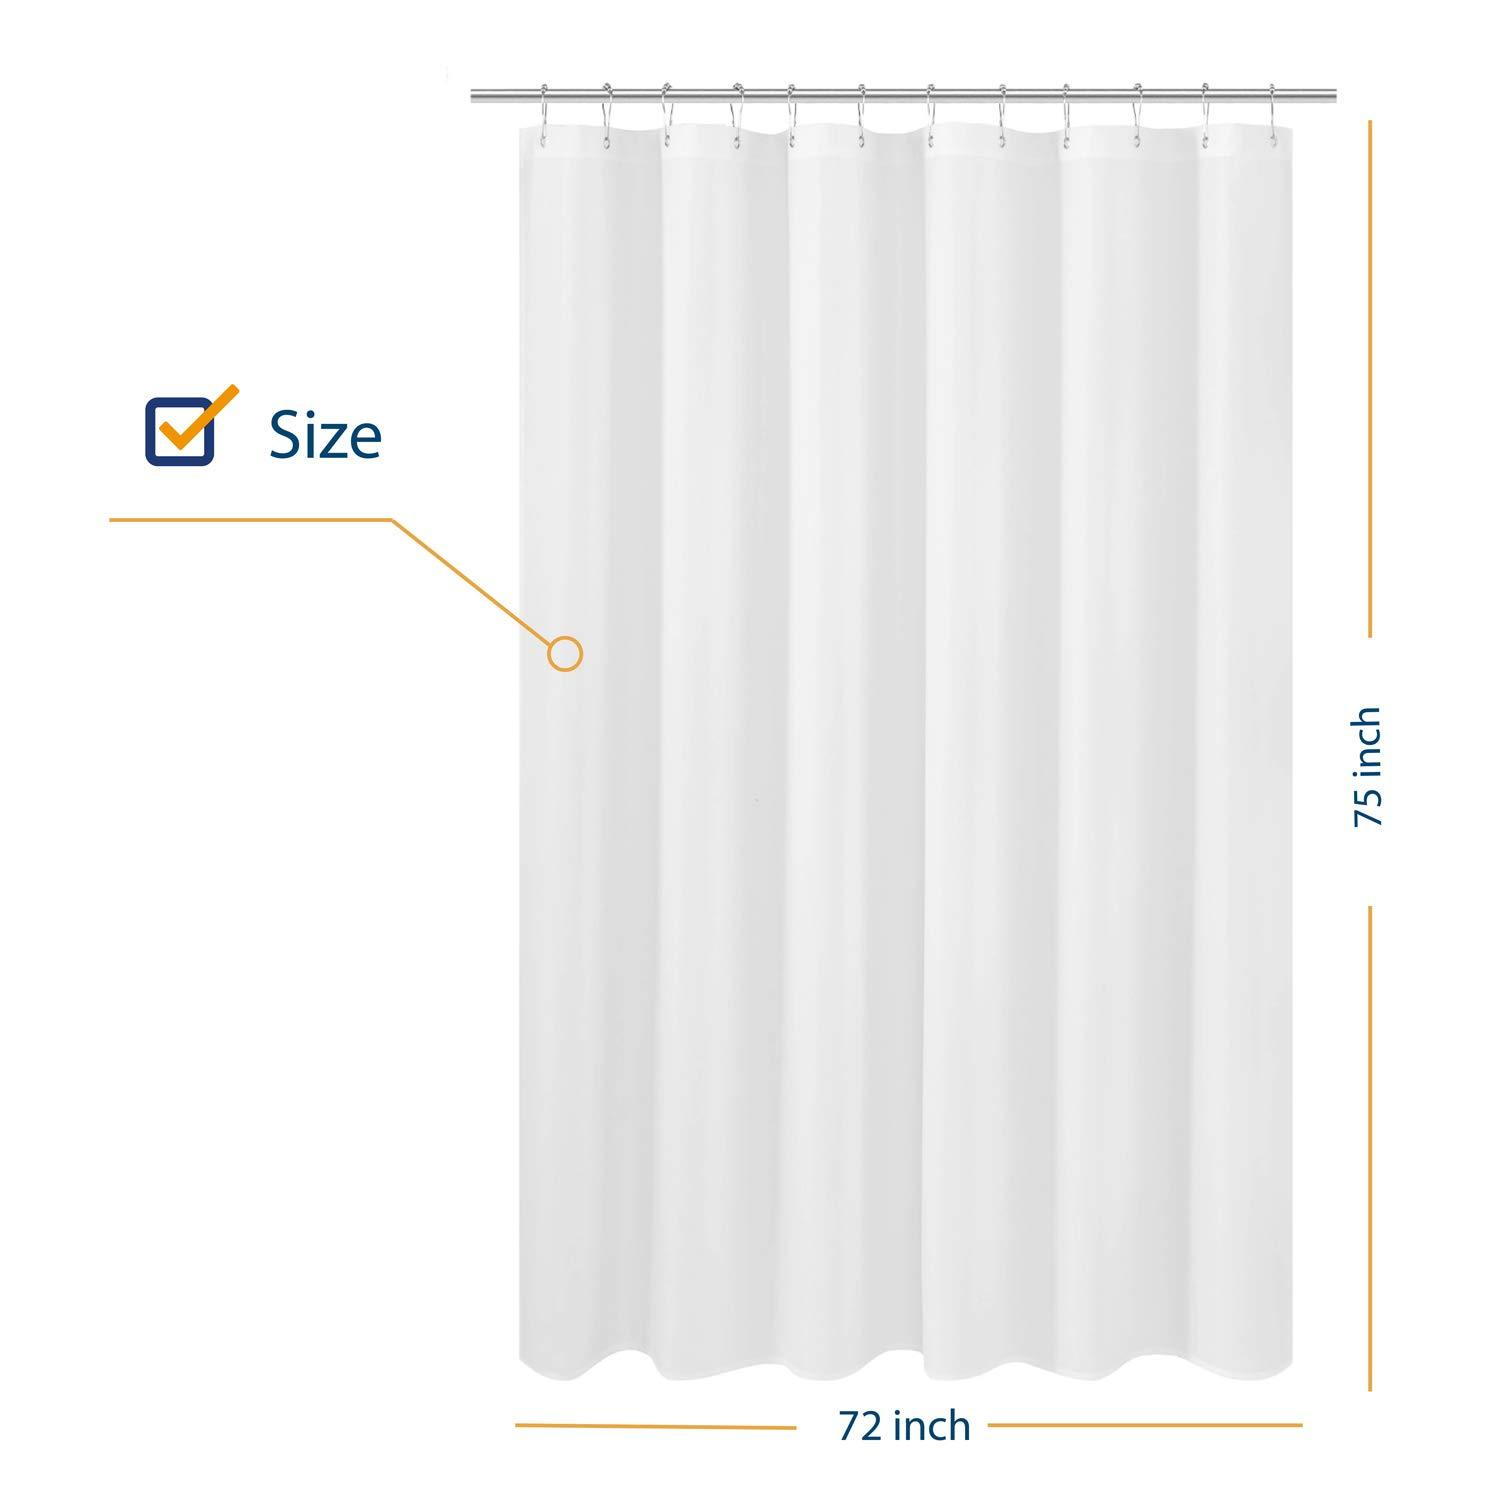 n y home longer shower curtain liner fabric 72 x 75 inches hotel quality washable white spa bathroom curtains with grommets 72x75 72 x75